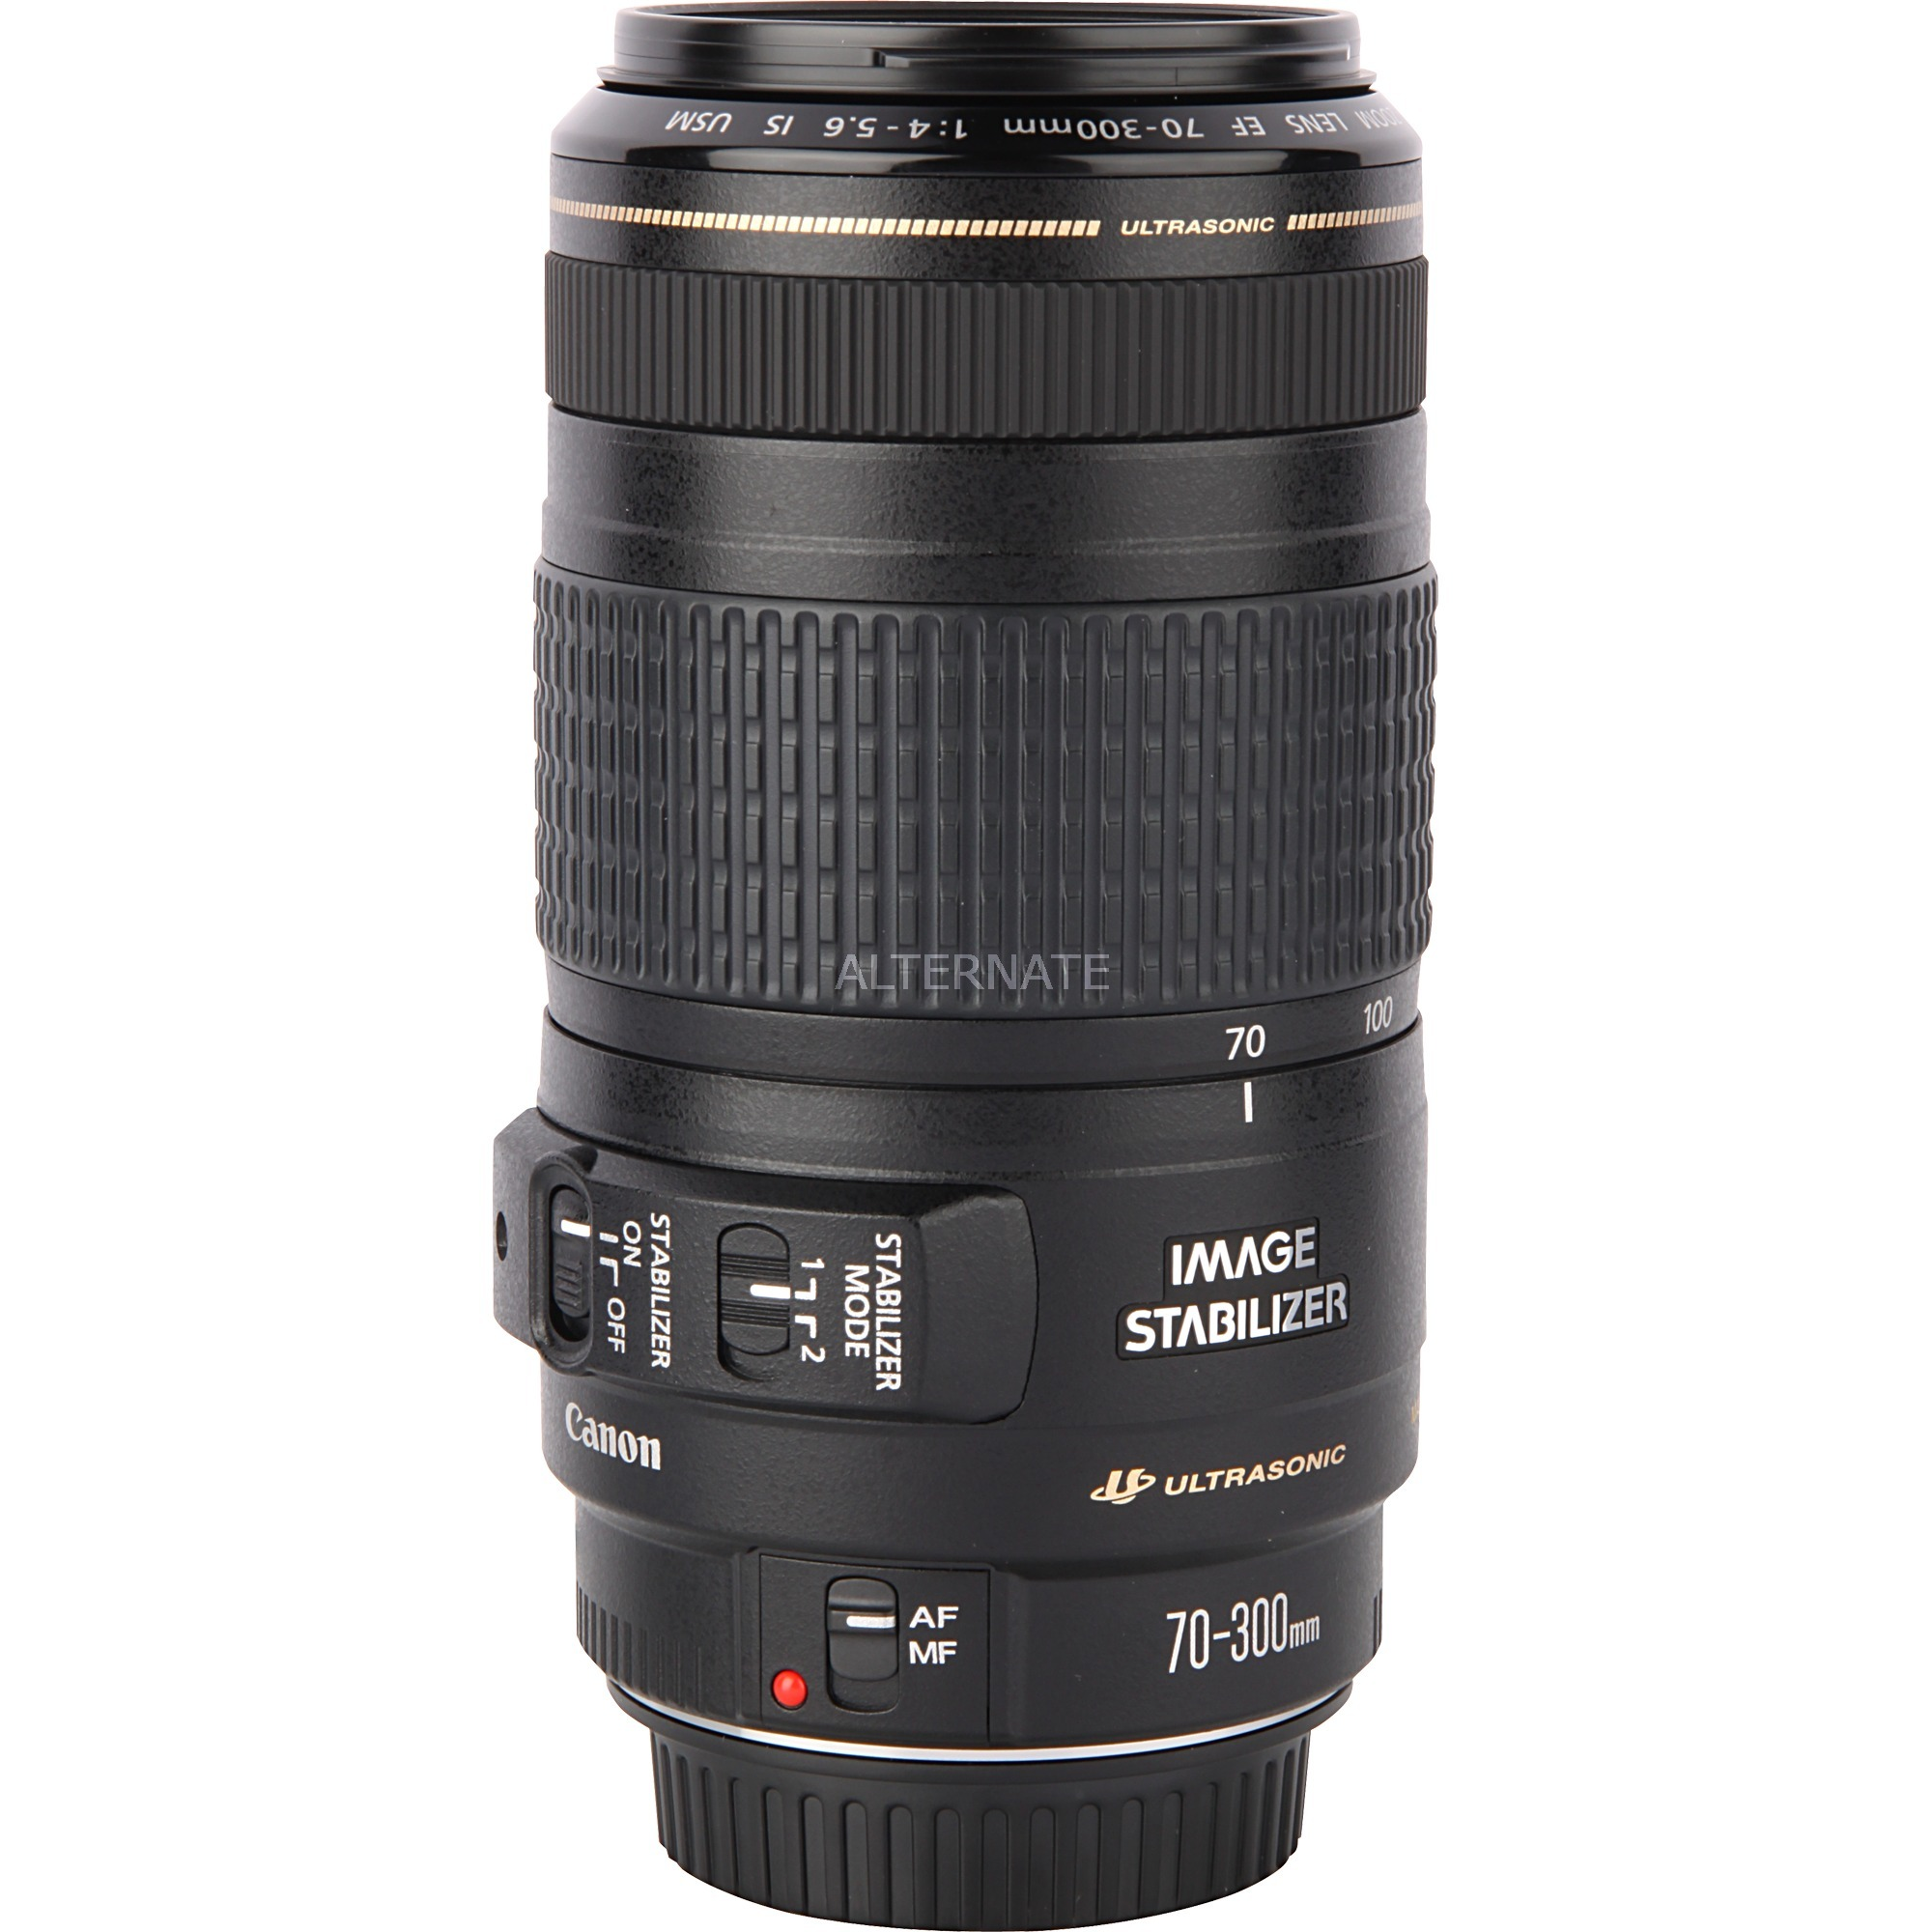 Objetivo EF 70-300mm 1:4.0-5.6 IS USM, Objetivos